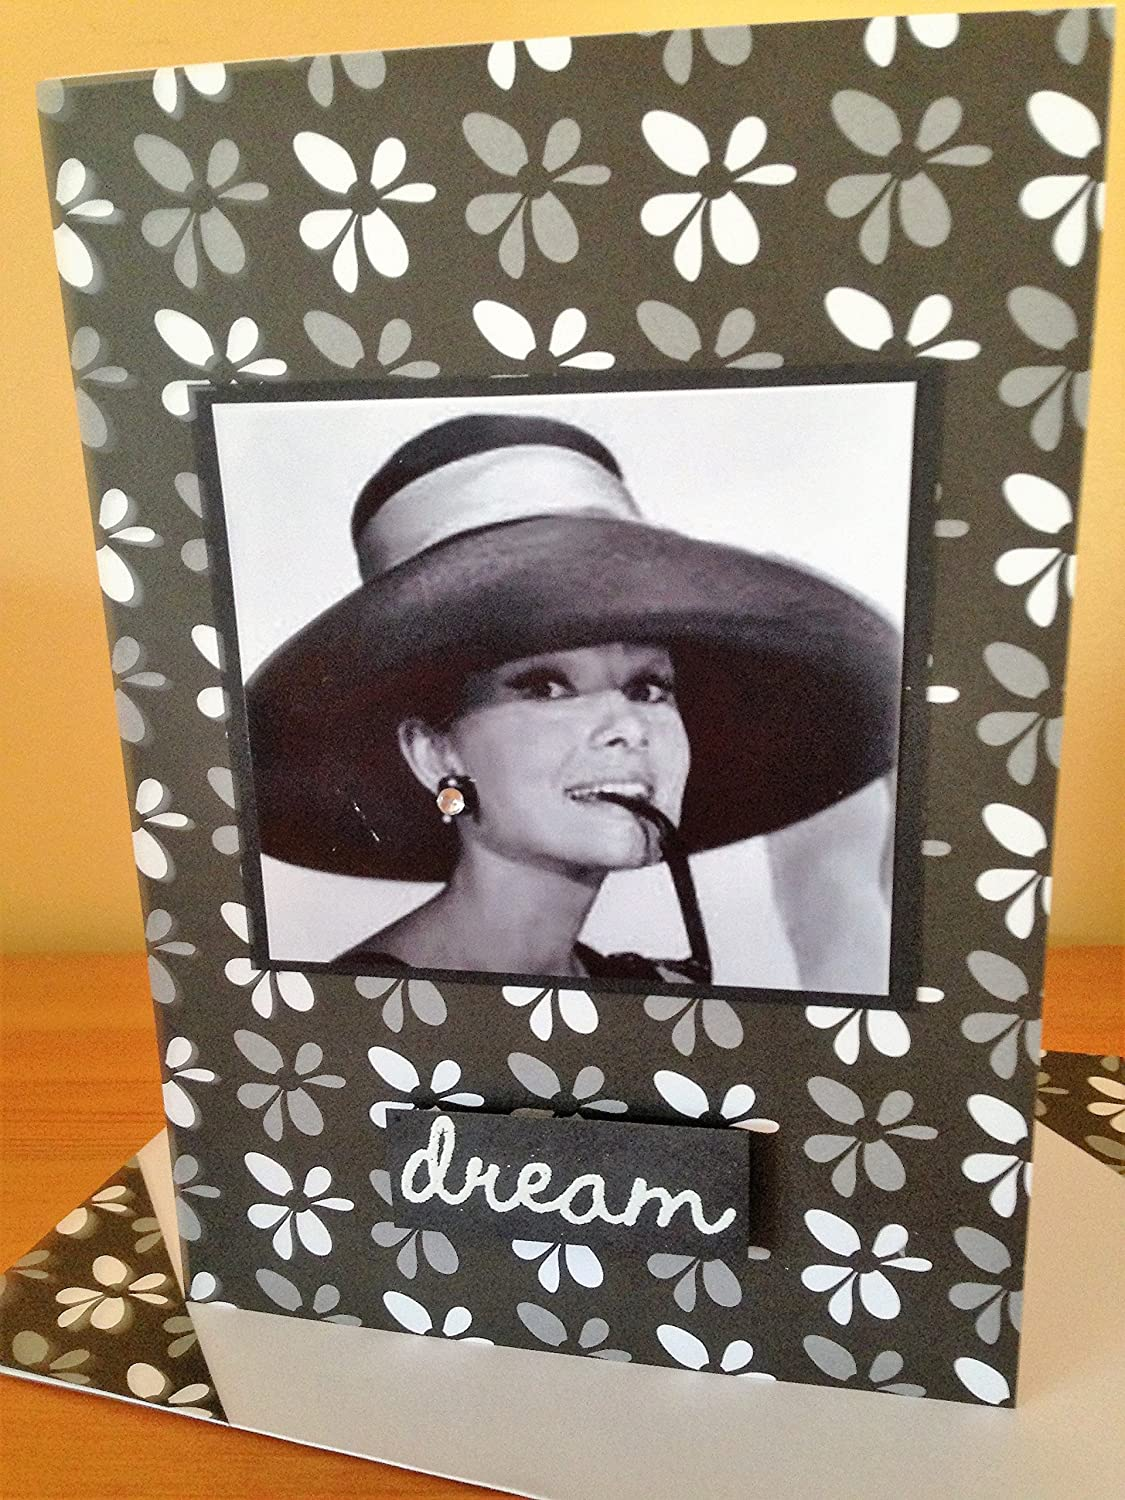 Audrey HEPBURN famous British actress and Fashion icon Vintage themed Unique birthday wishes card Love DREAM Romance matching envelope A6//C6 size